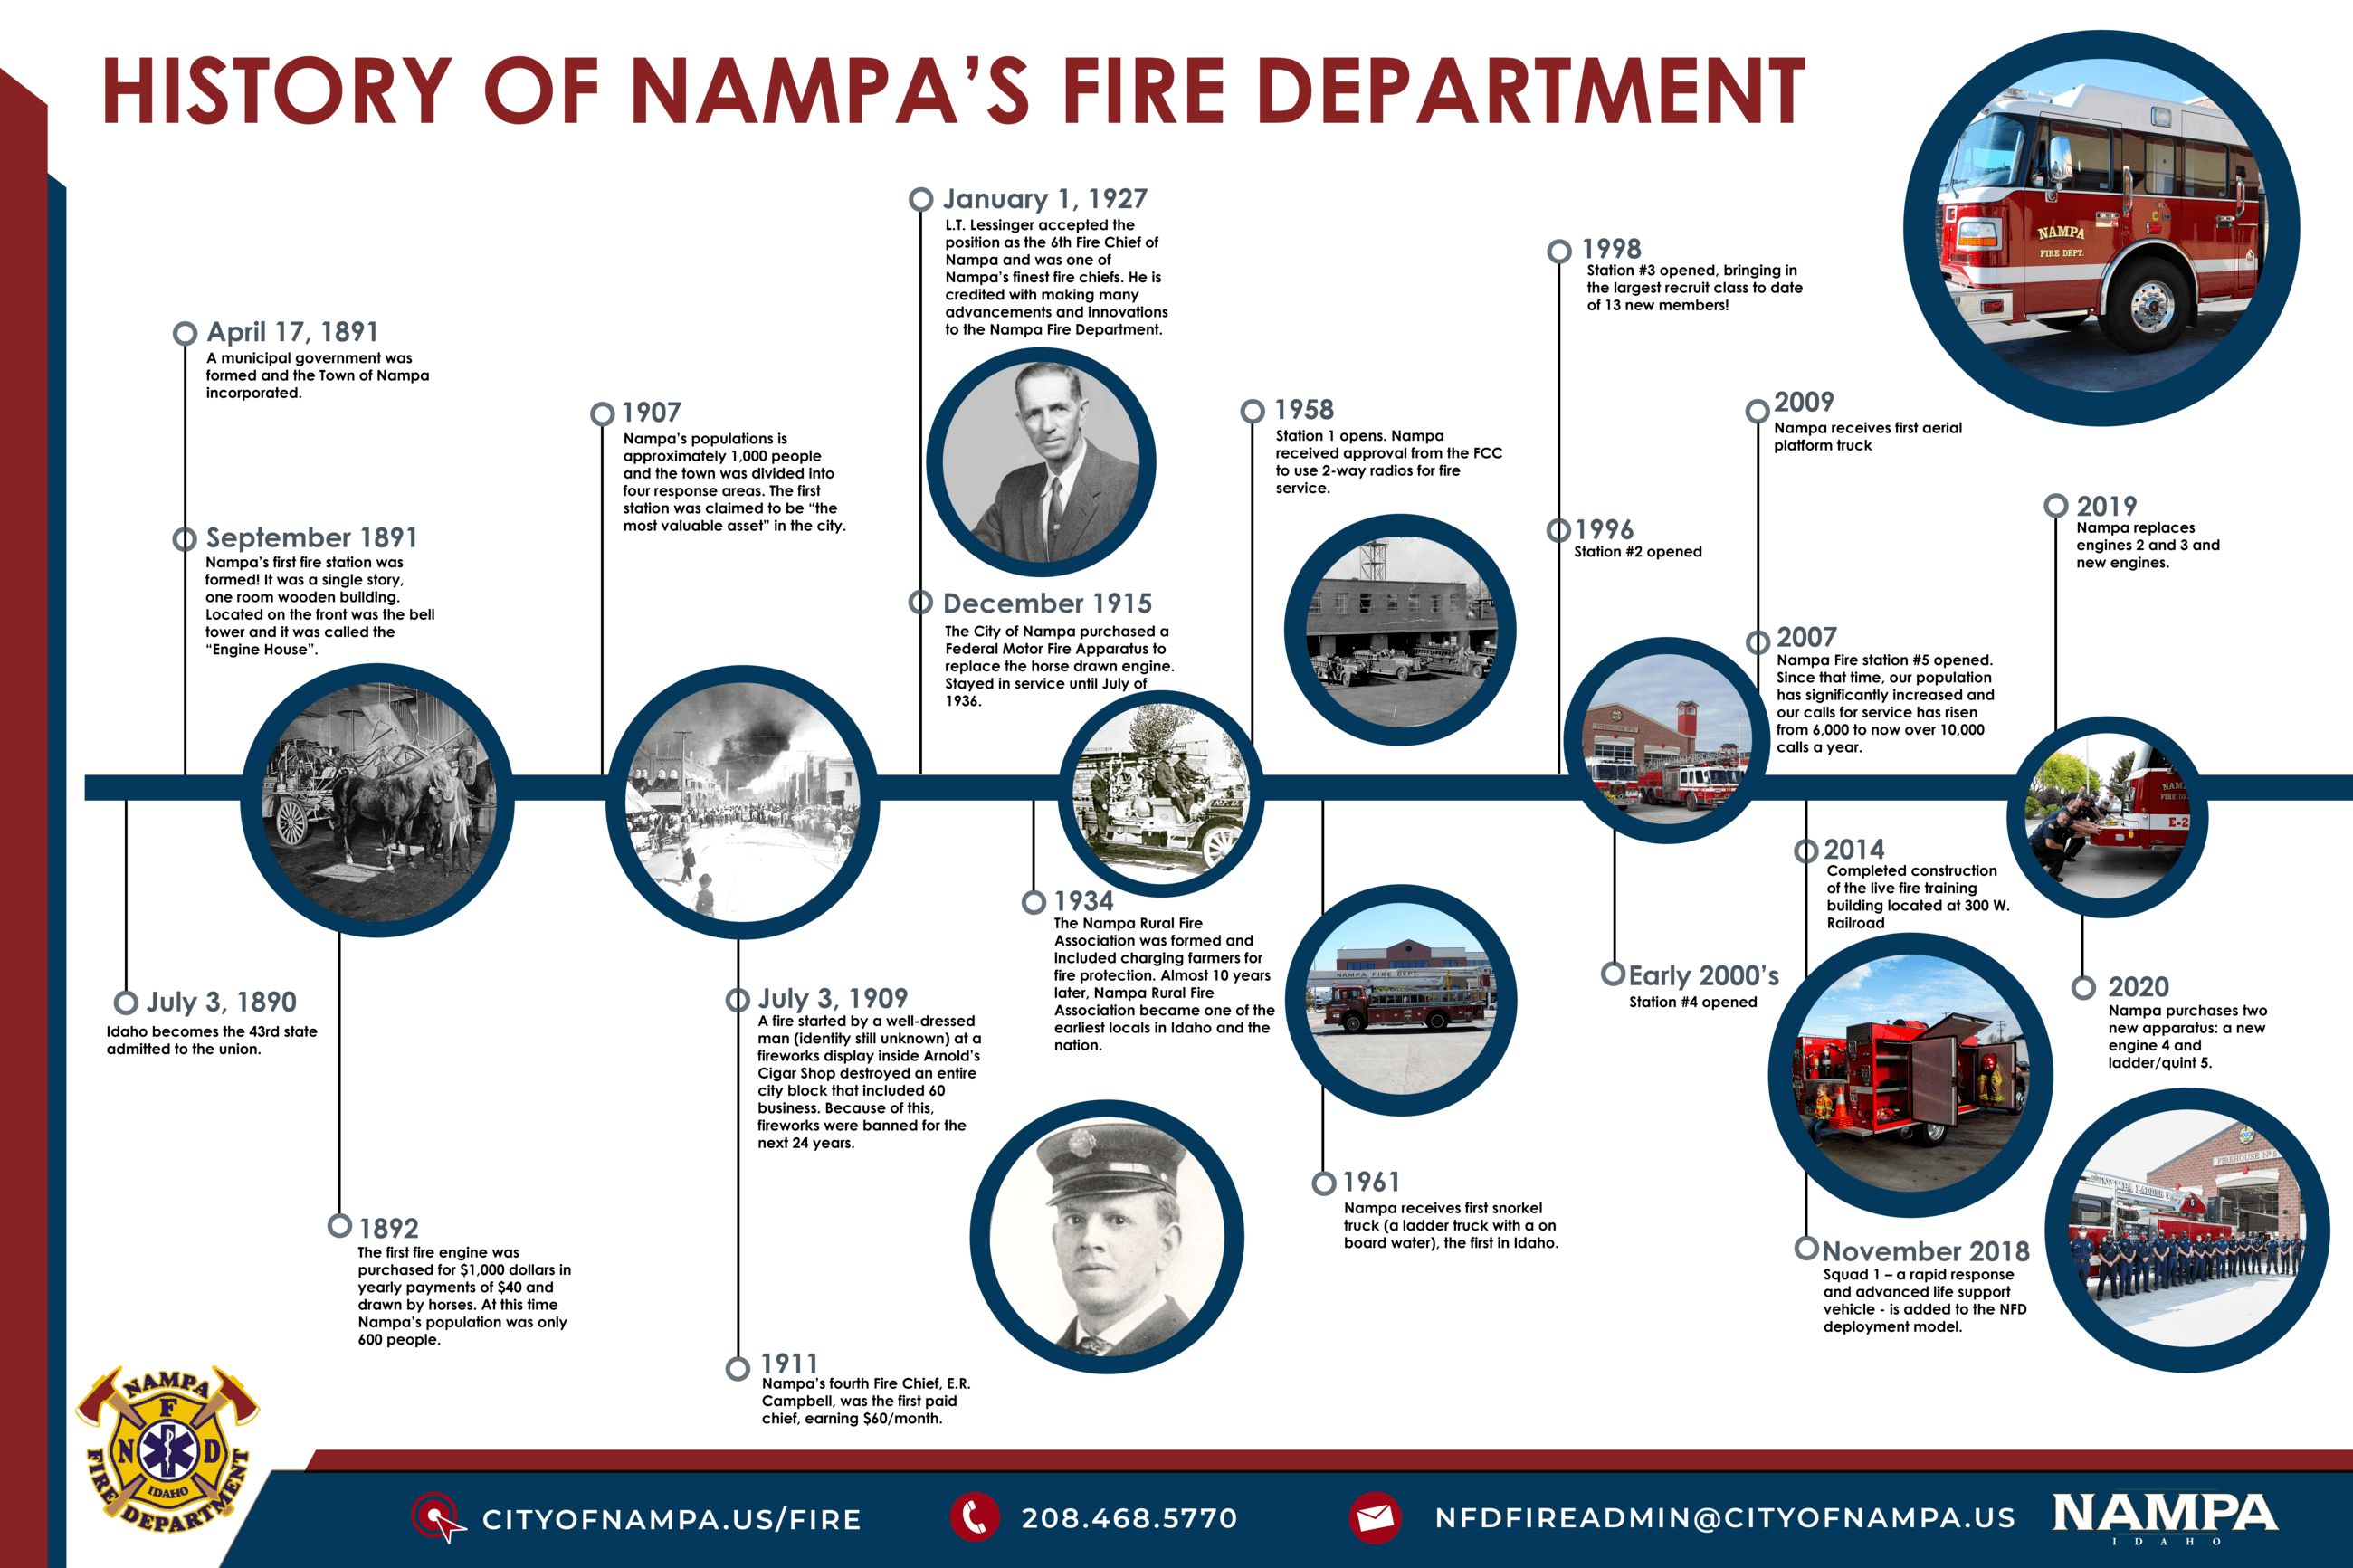 History of the Nampa Fire Department